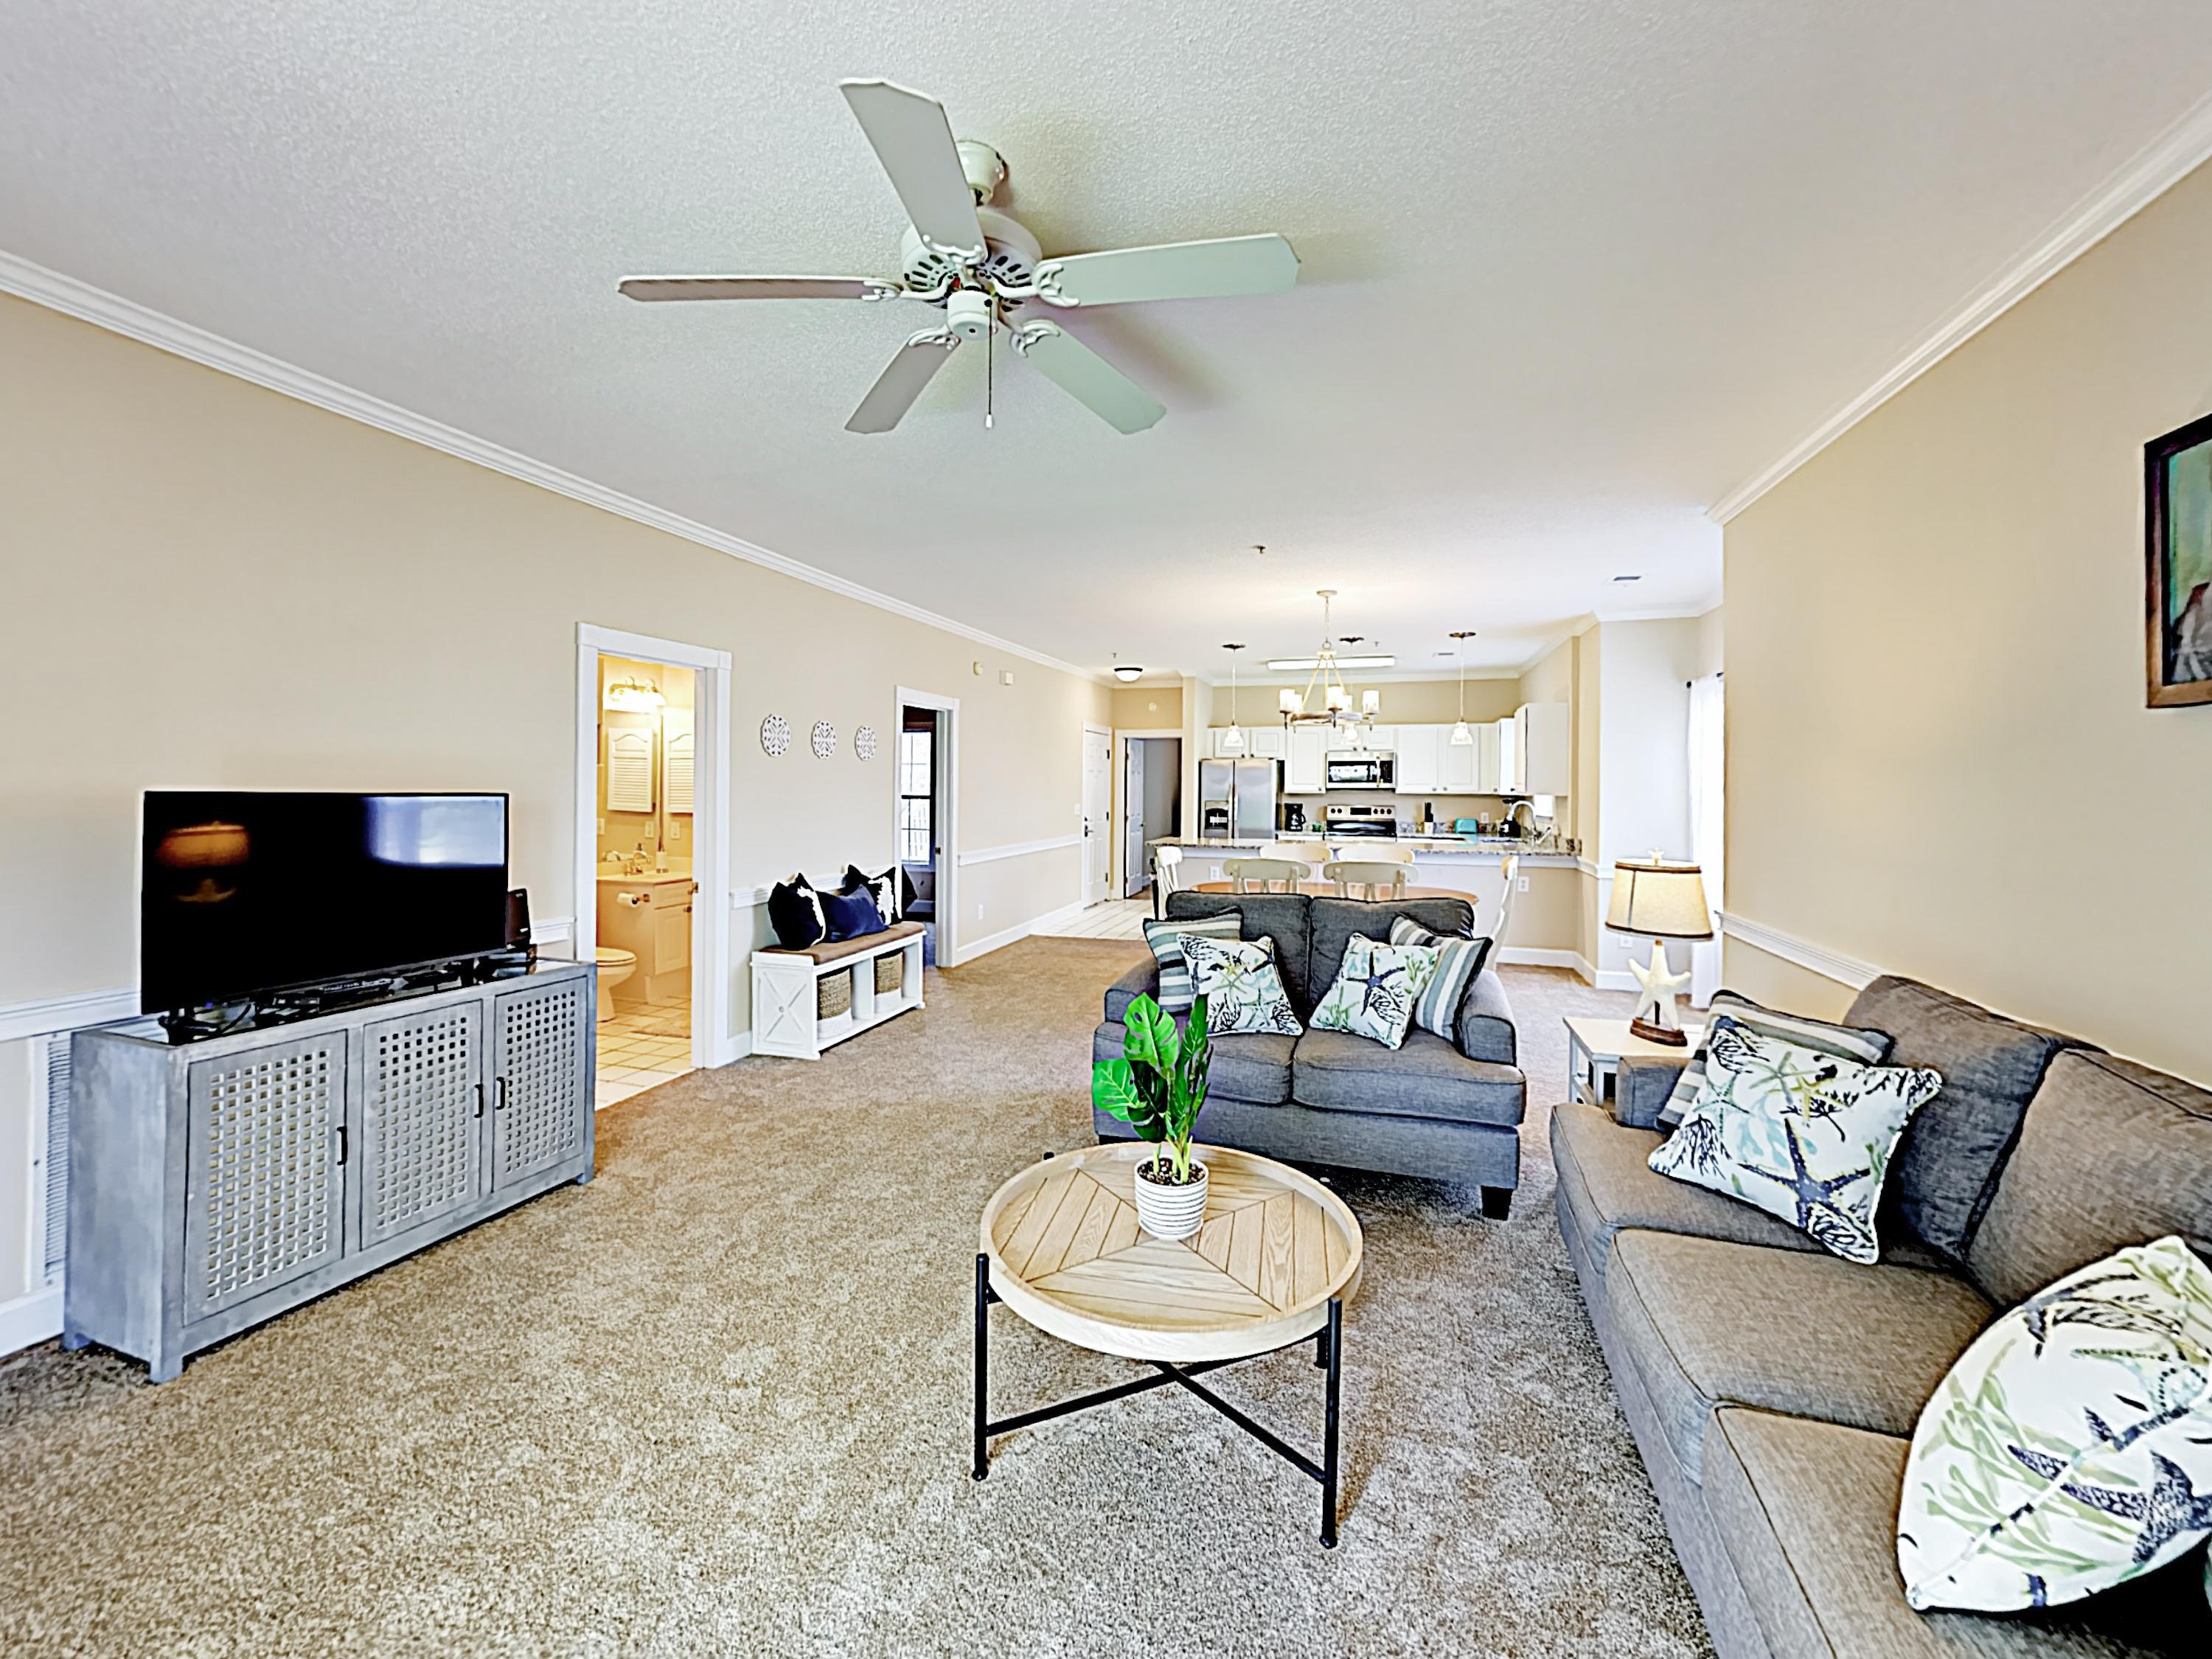 Welcome to Myrtle Beach! This Magnolia North condo is professionally managed by TurnKey Vacation Rentals.